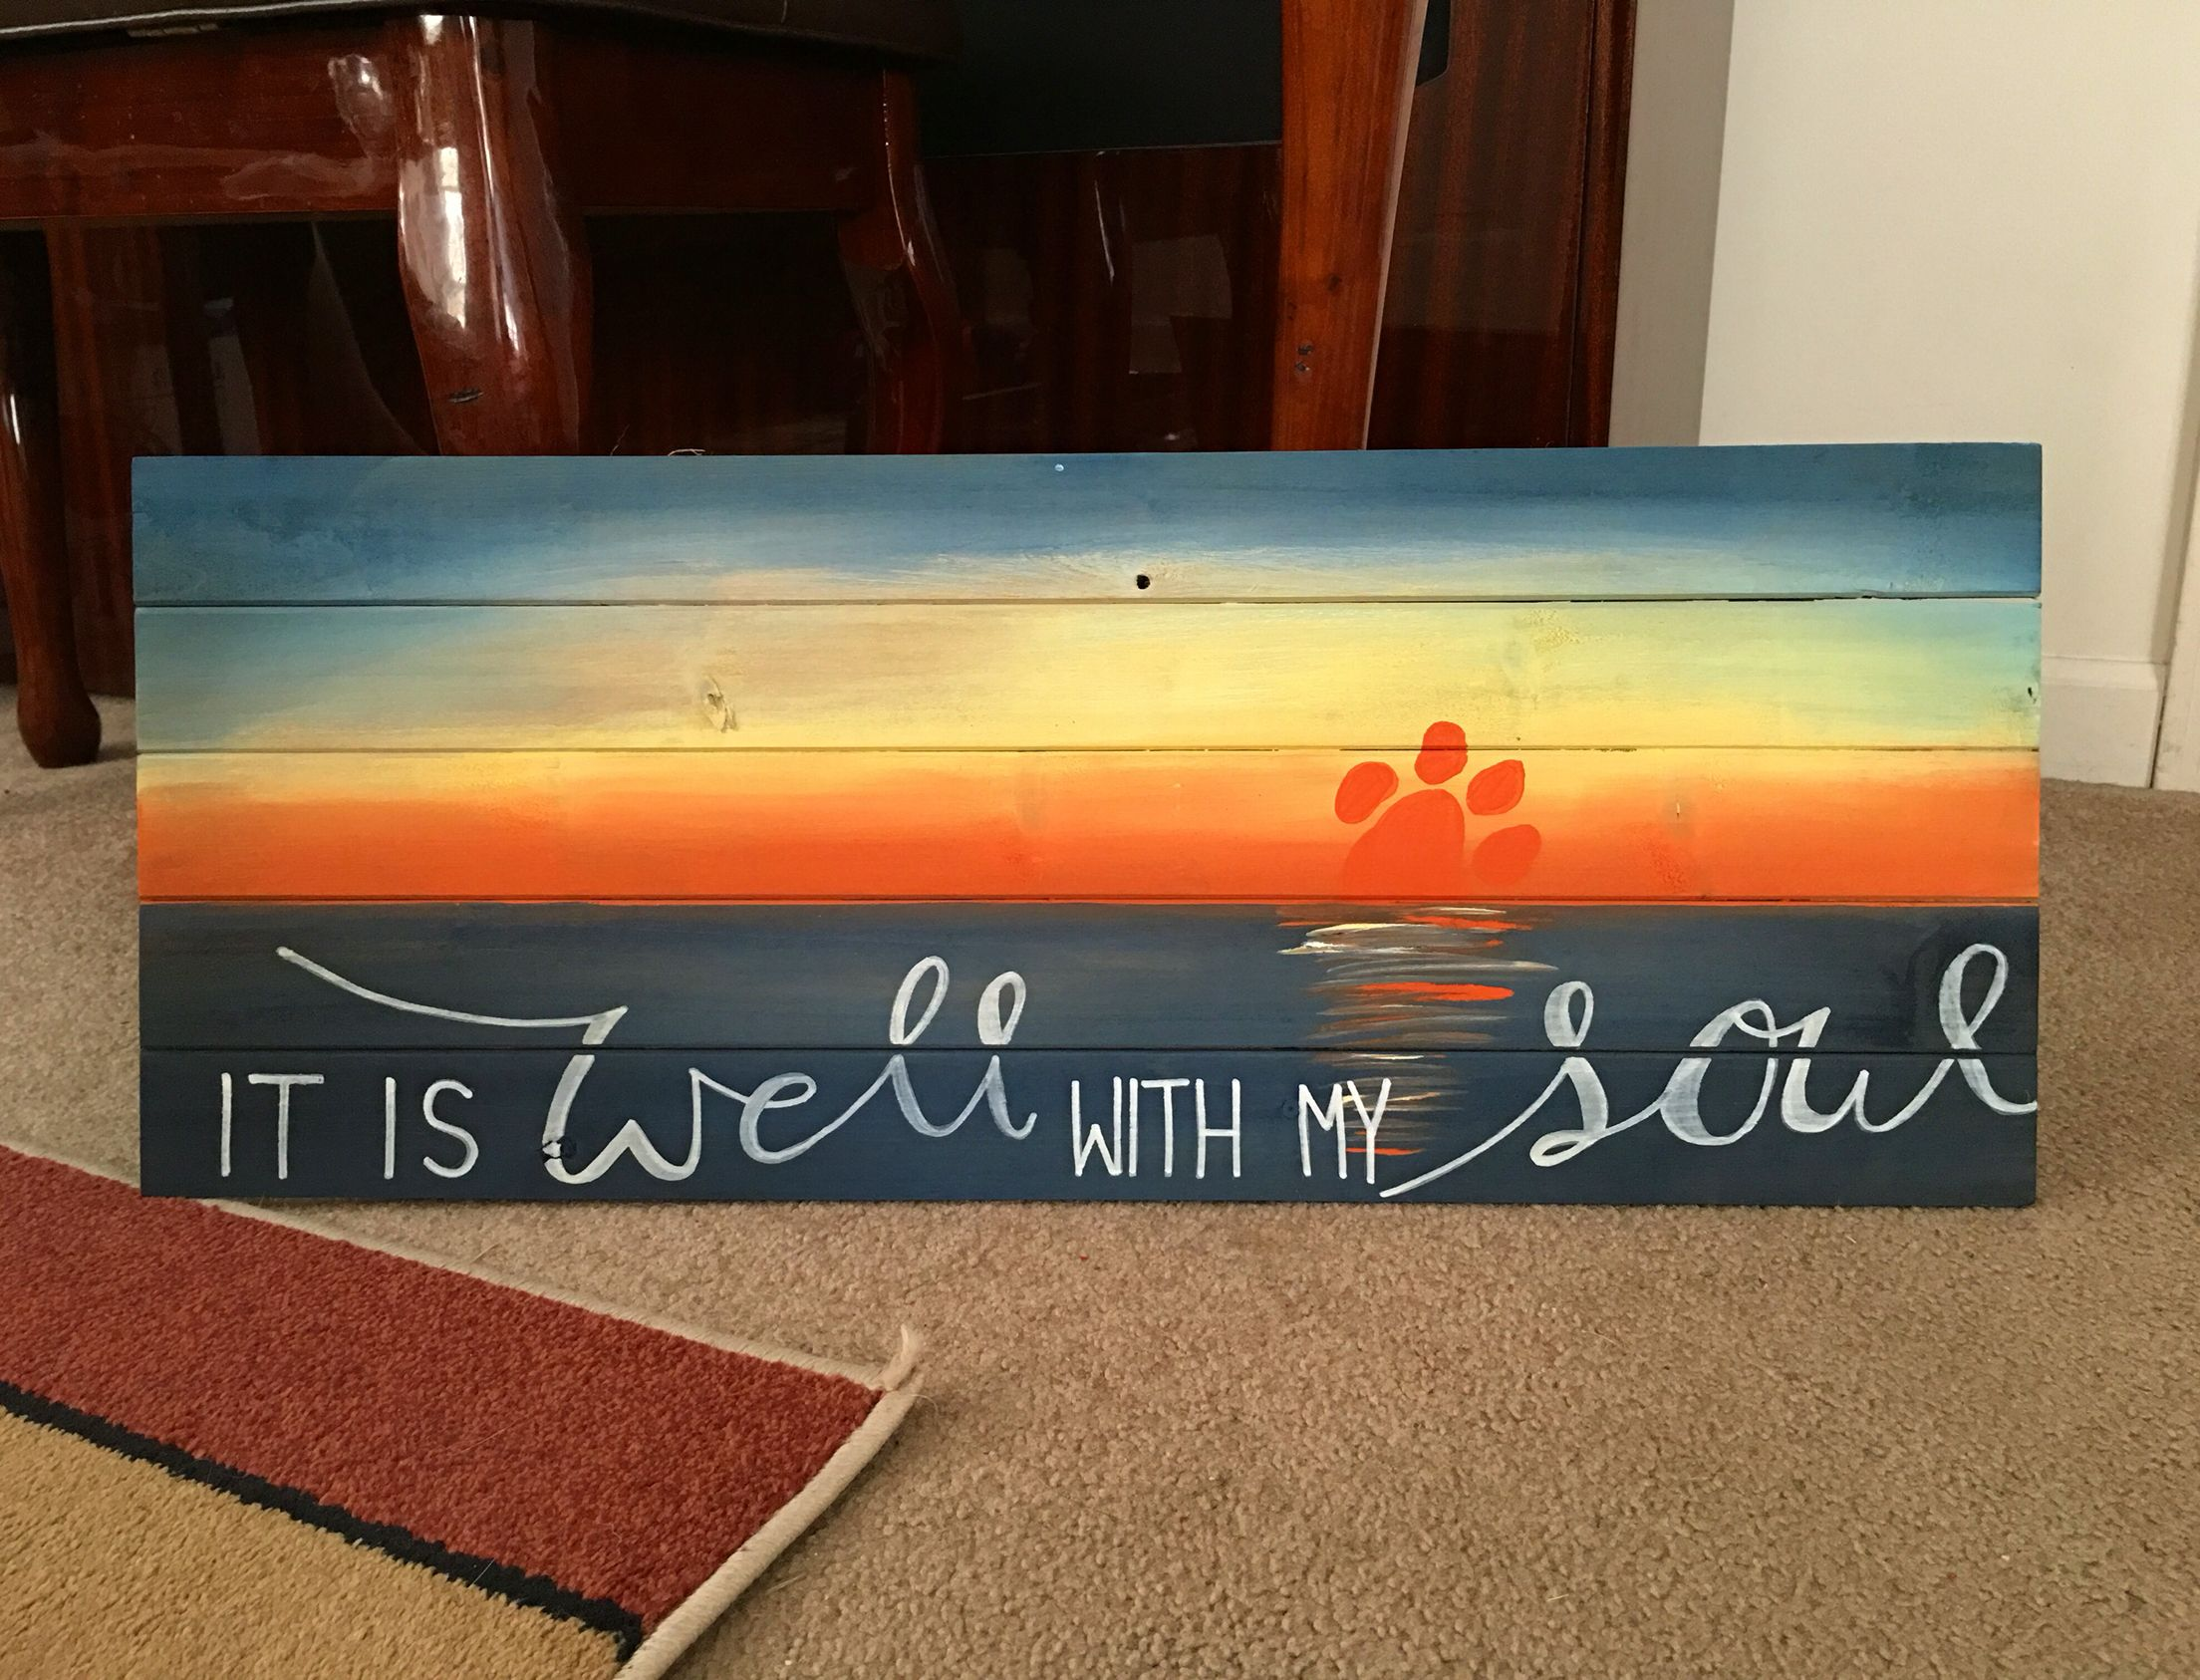 Design Where Can I Buy Wood Pallets best 25 wooden pallets for sale ideas on pinterest clemson sunset it is well with my soul pallet plaque